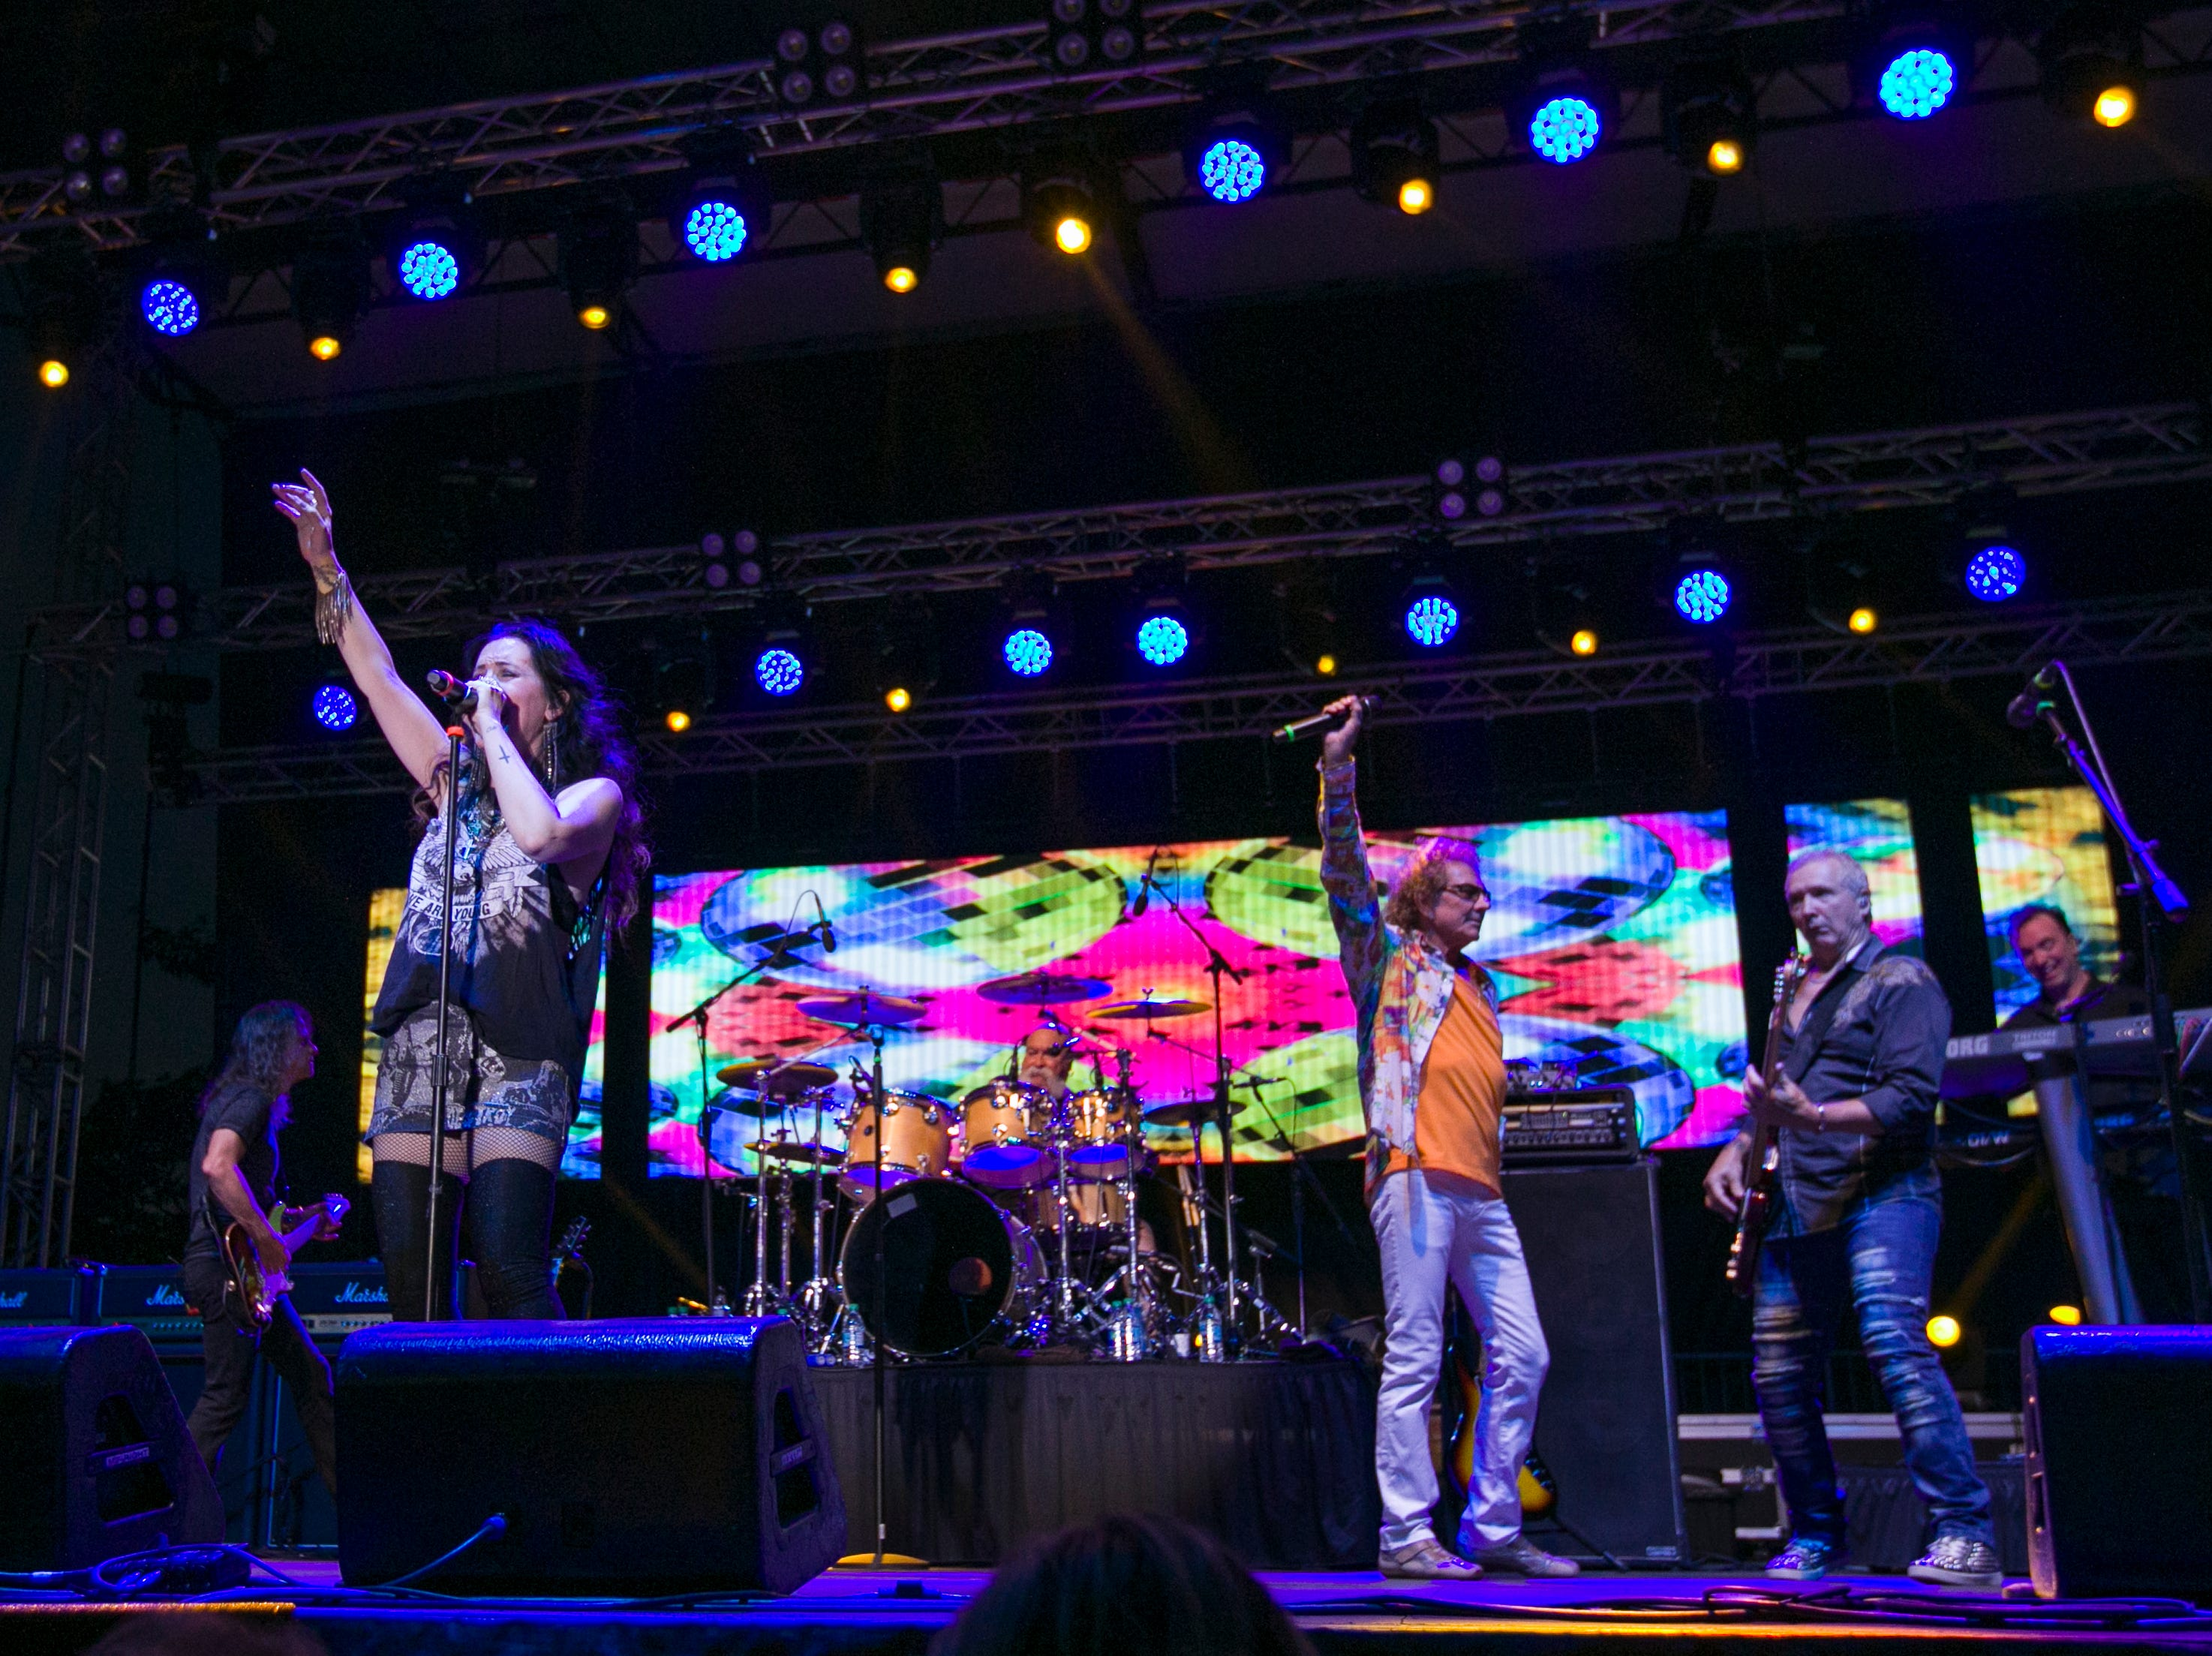 A photograph taken during the Starship Concert during Hot August Nights at the Grand Sierra Resort on Friday, August 10, 2018.